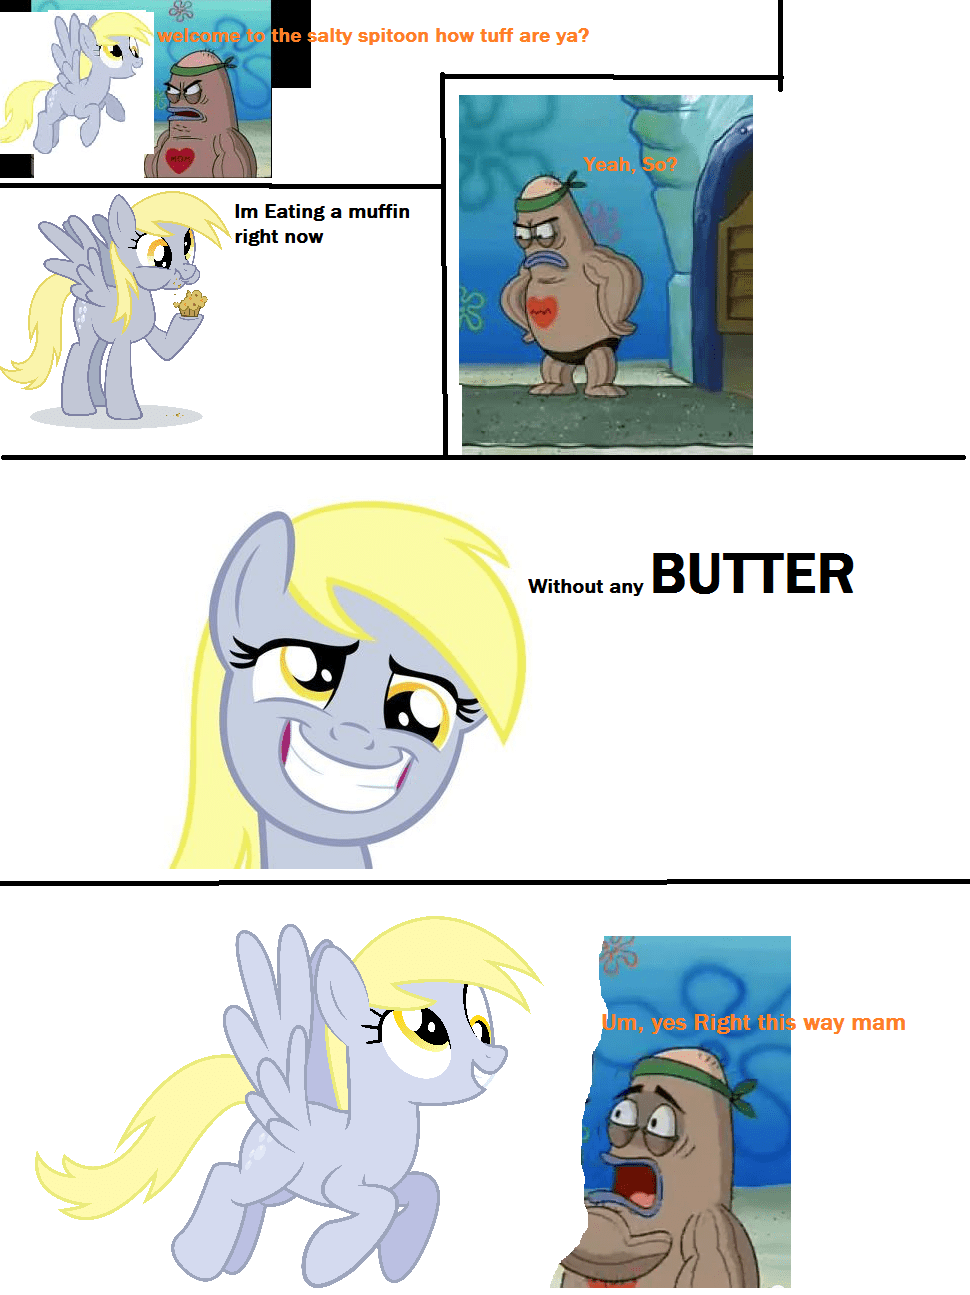 Dirty Harry Quotes Wallpaper Derpy Enters The Salty Spitoon My Little Pony